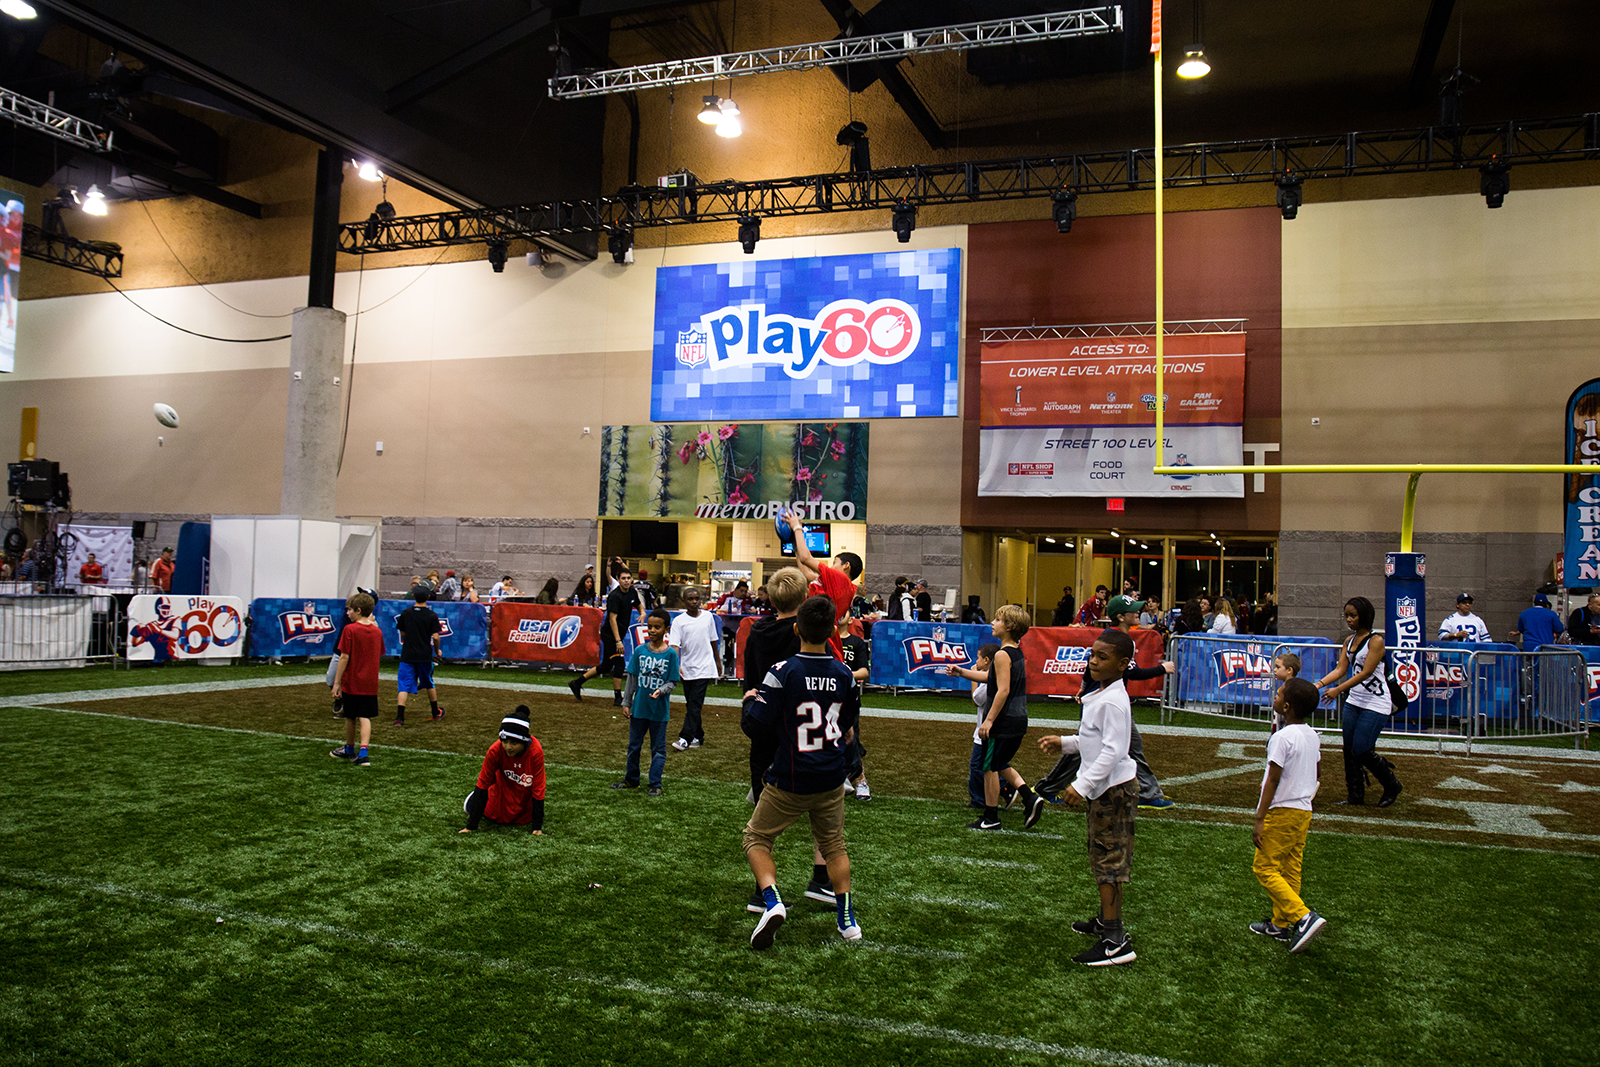 NFL Experience Super Bowl 50 Moscone Center San Francisco